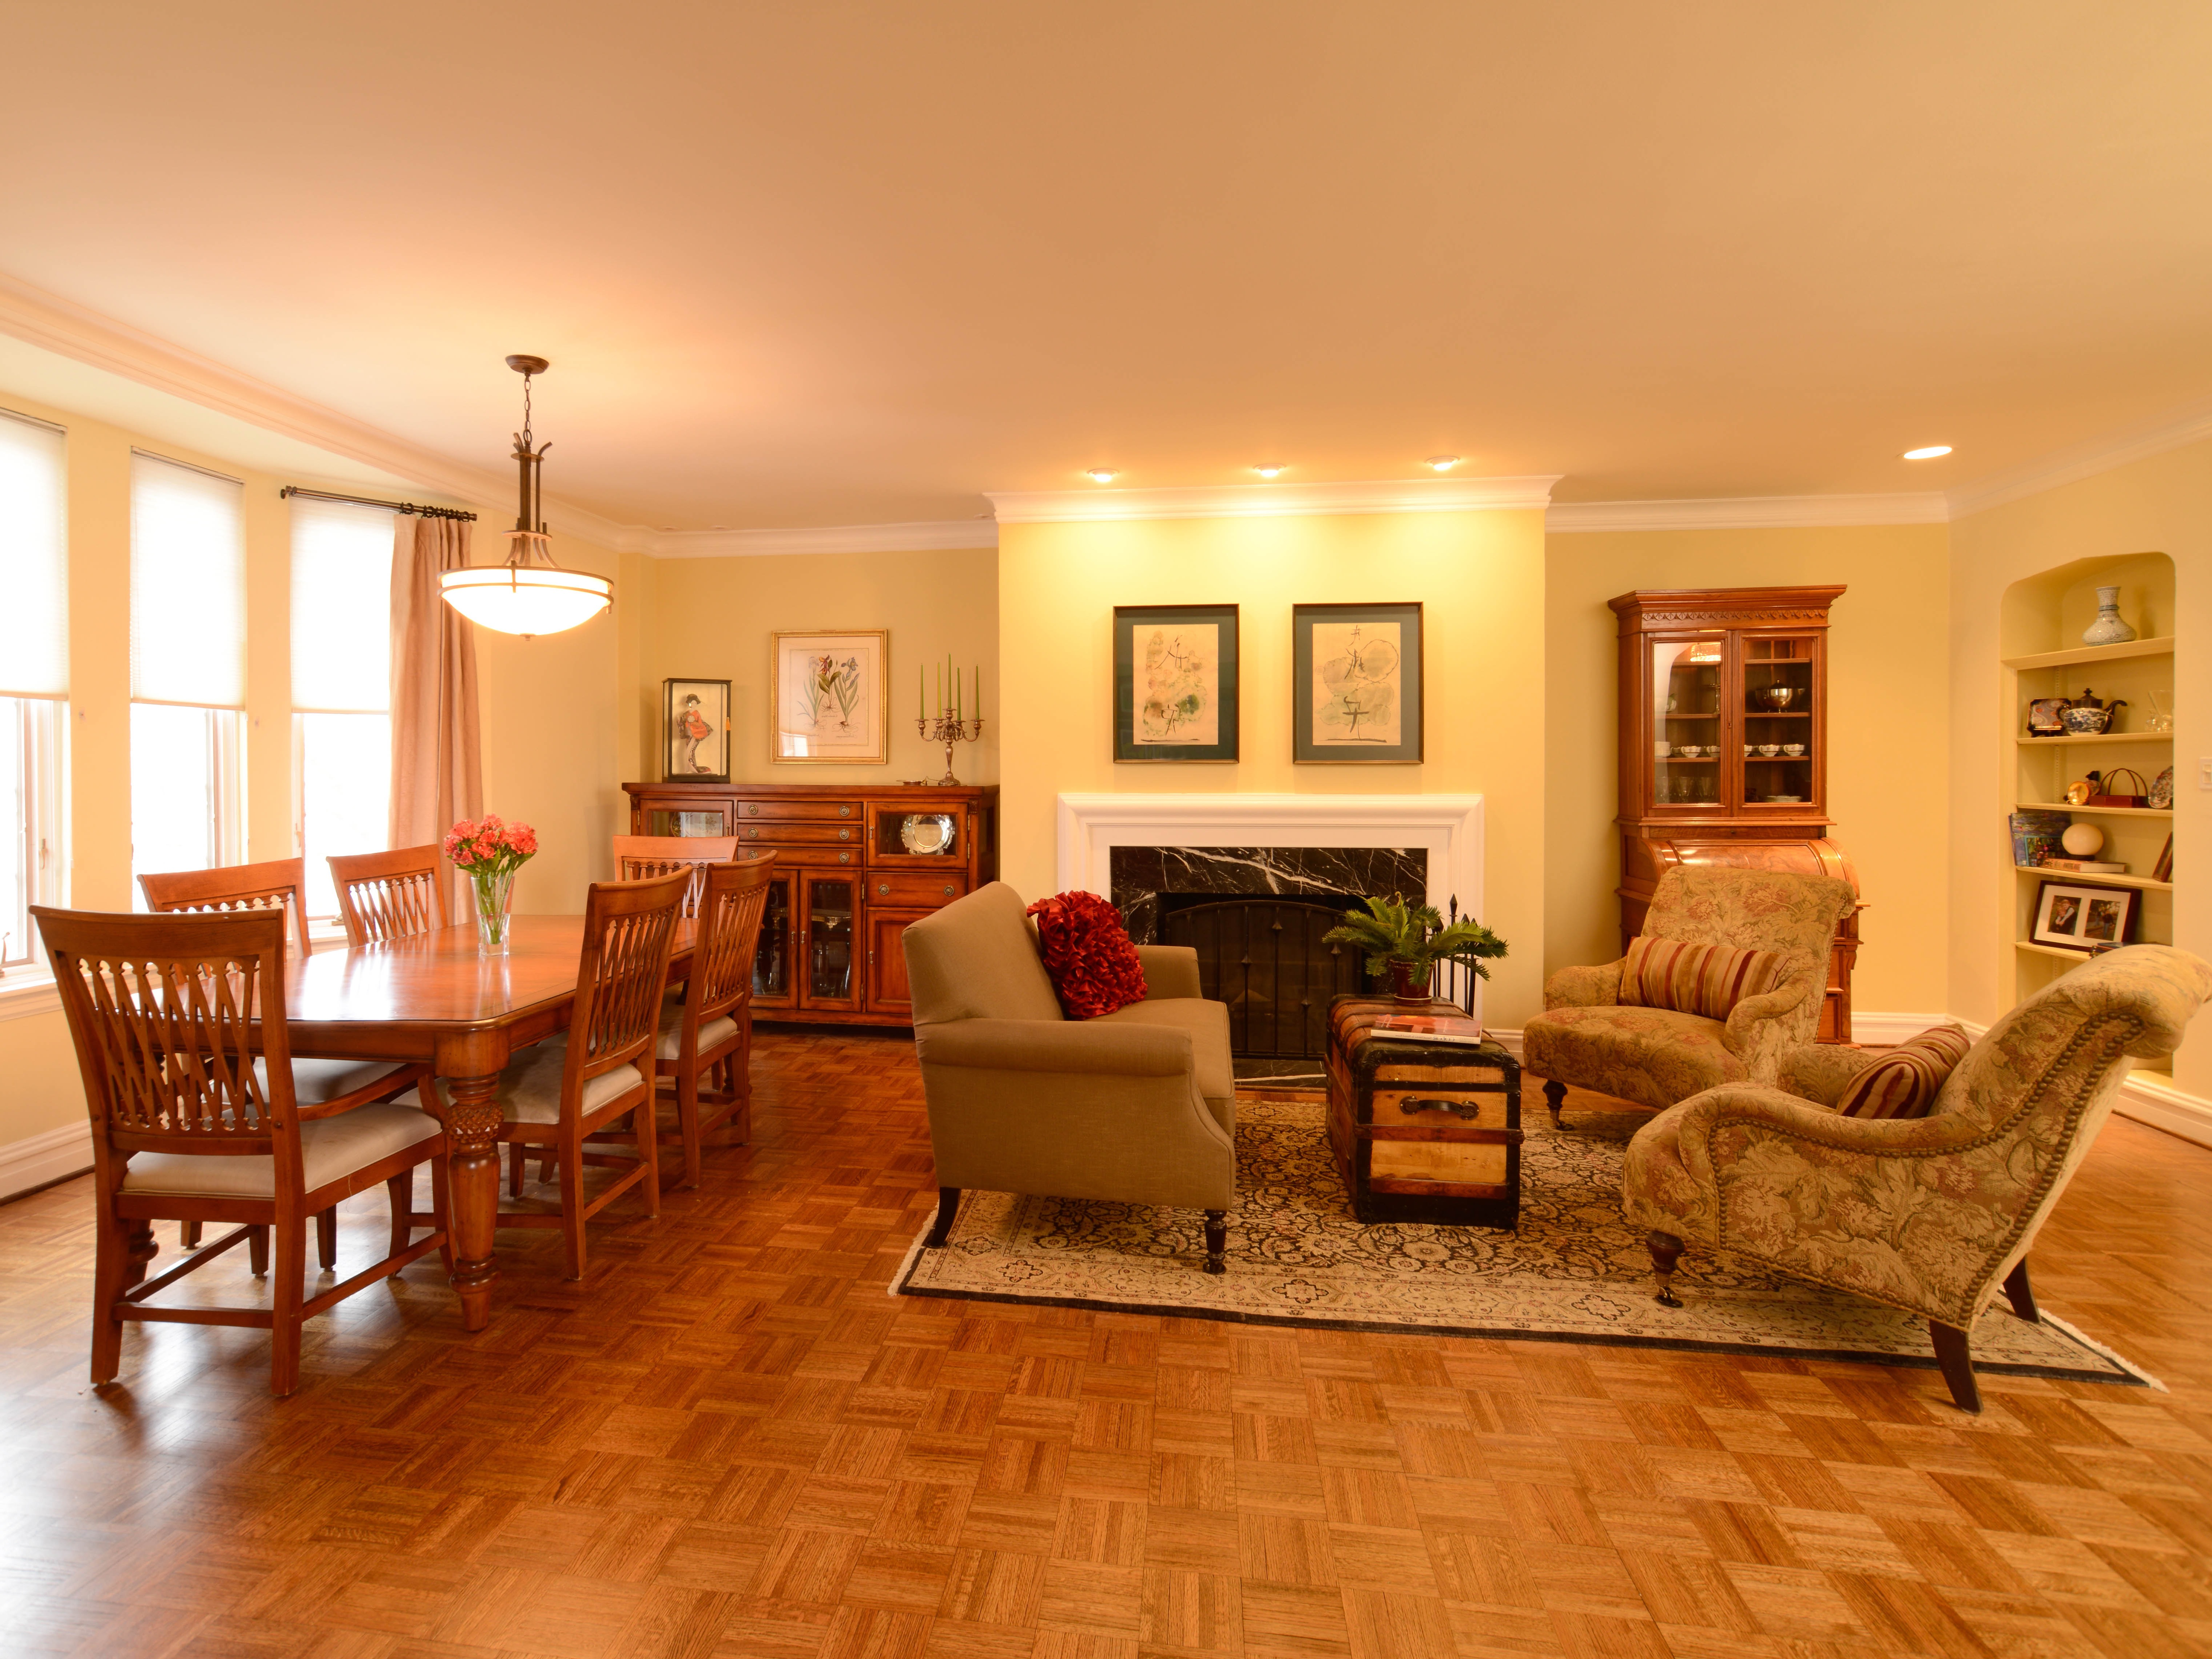 Parquet Flooring For Living And Dining Room Combo (View 7 of 15)